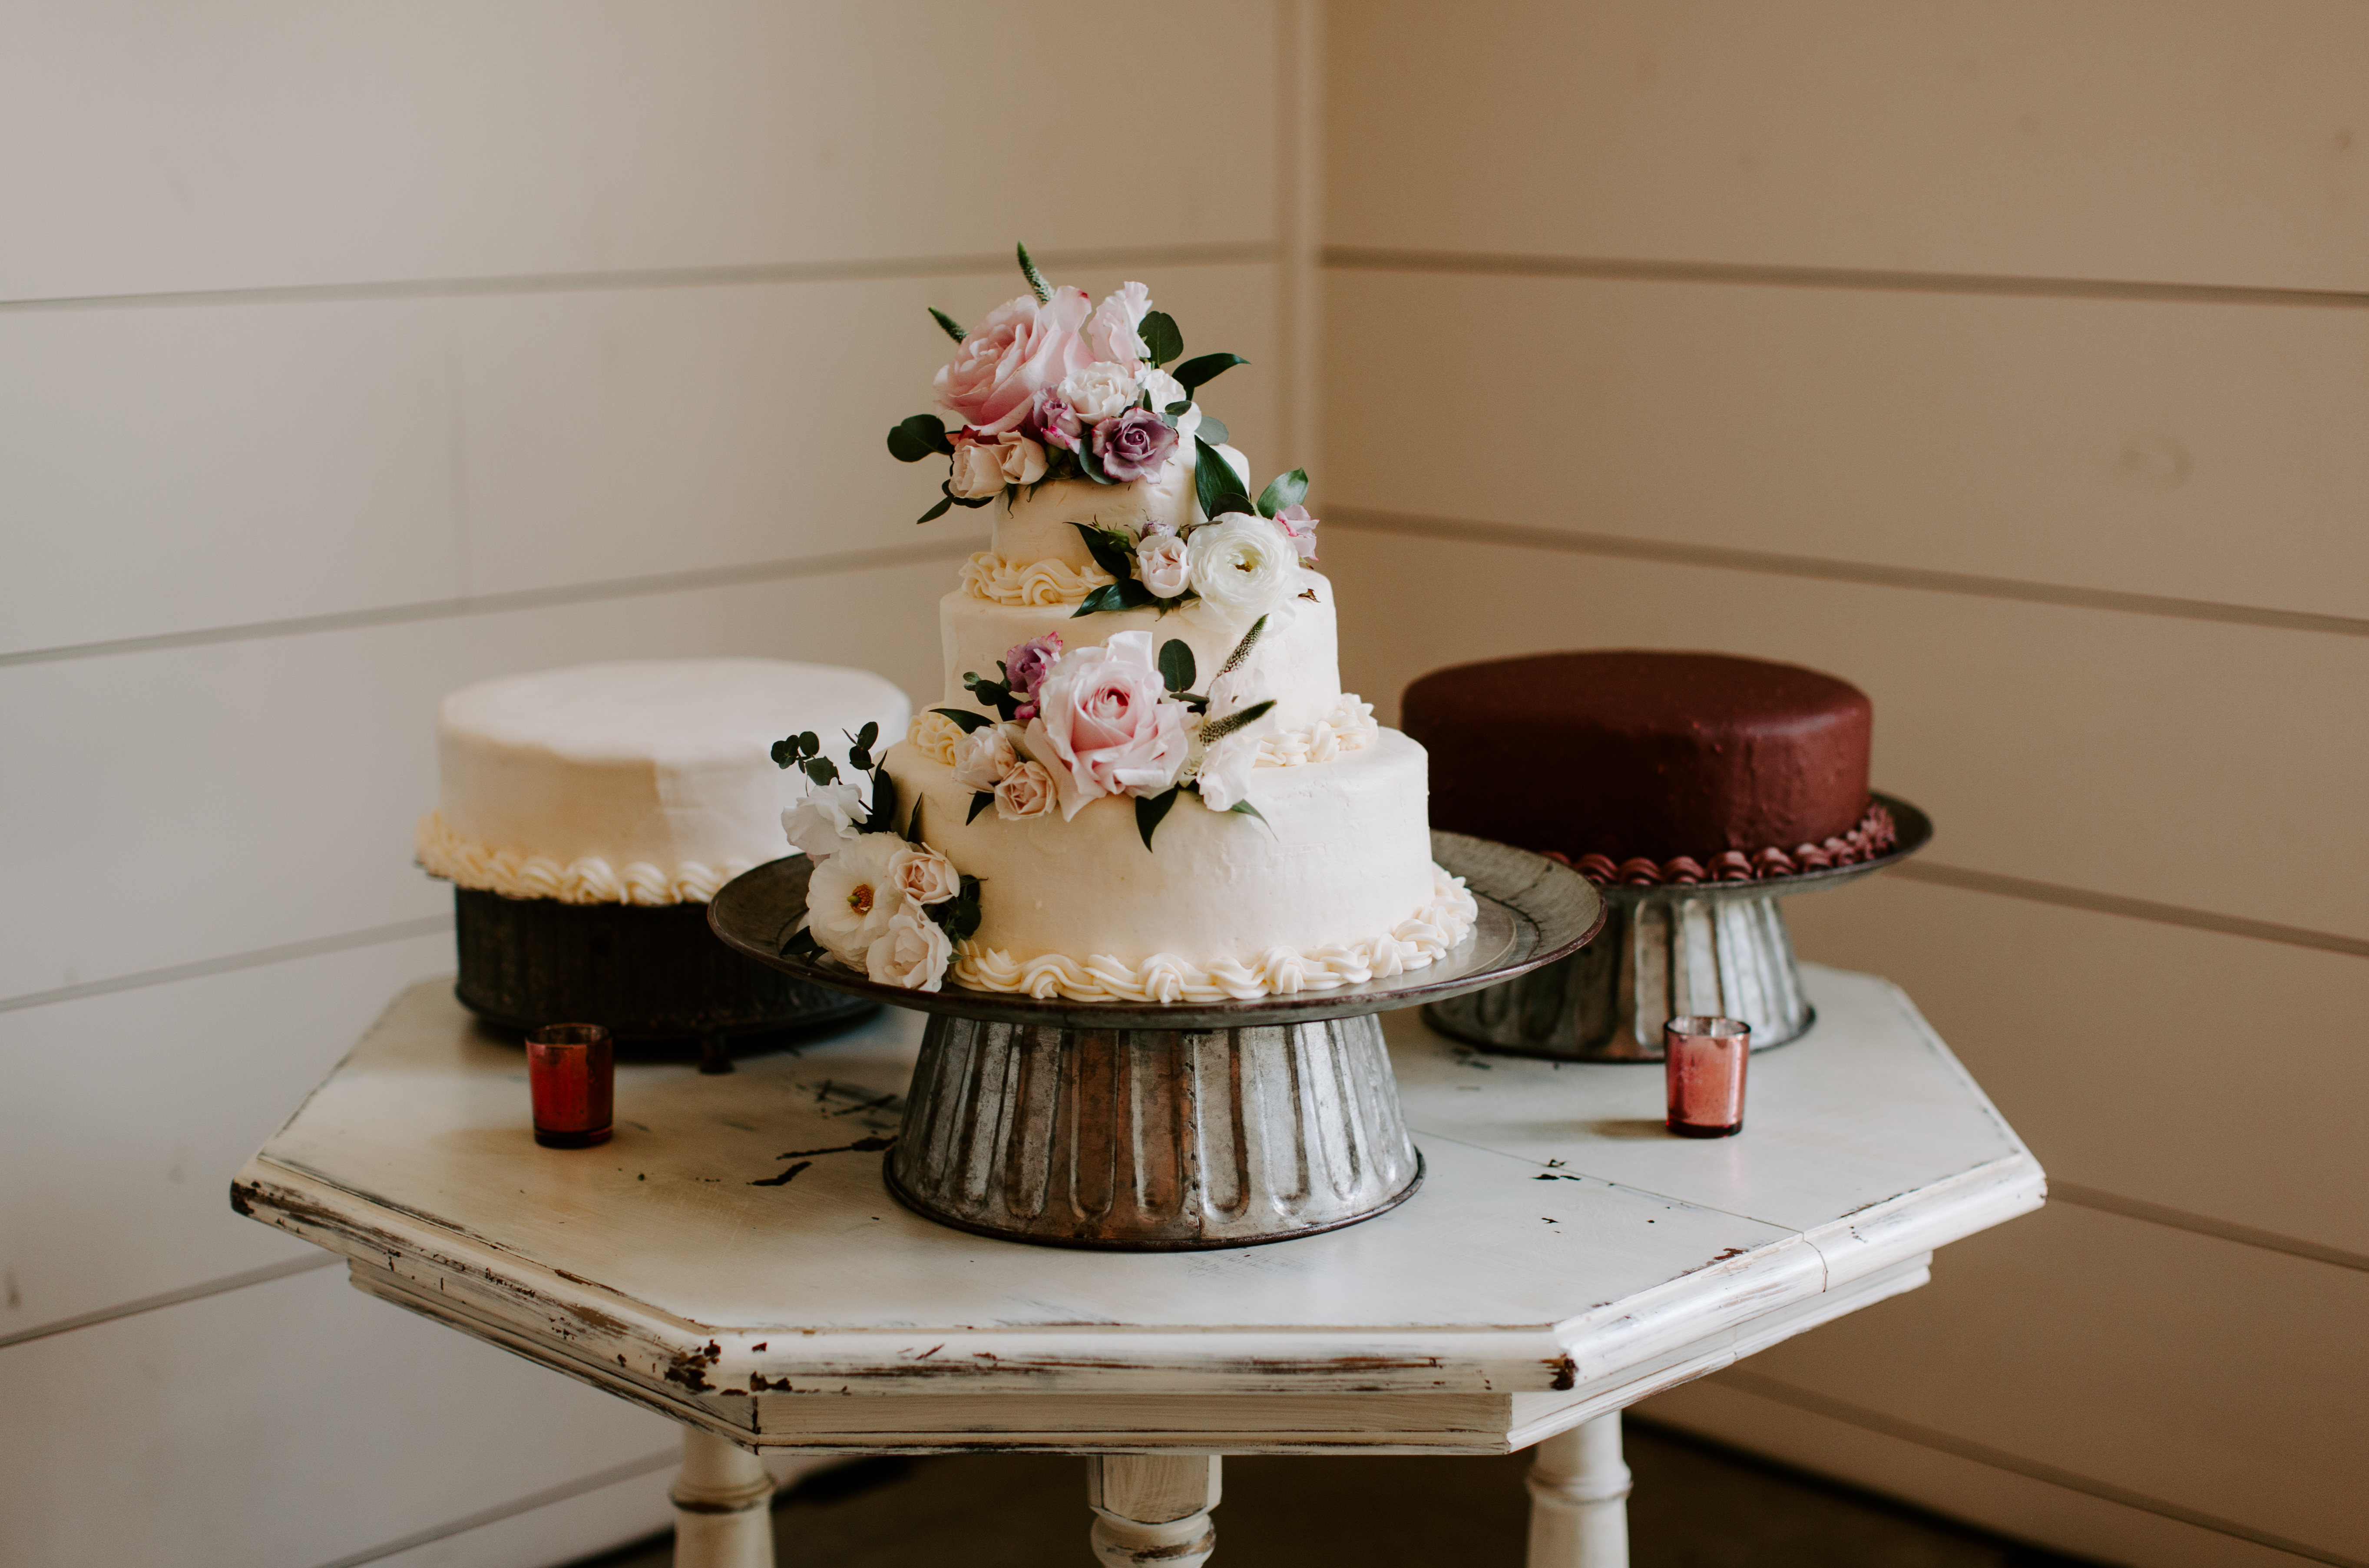 Cake table with vanilla and chocolate cakes at wedding